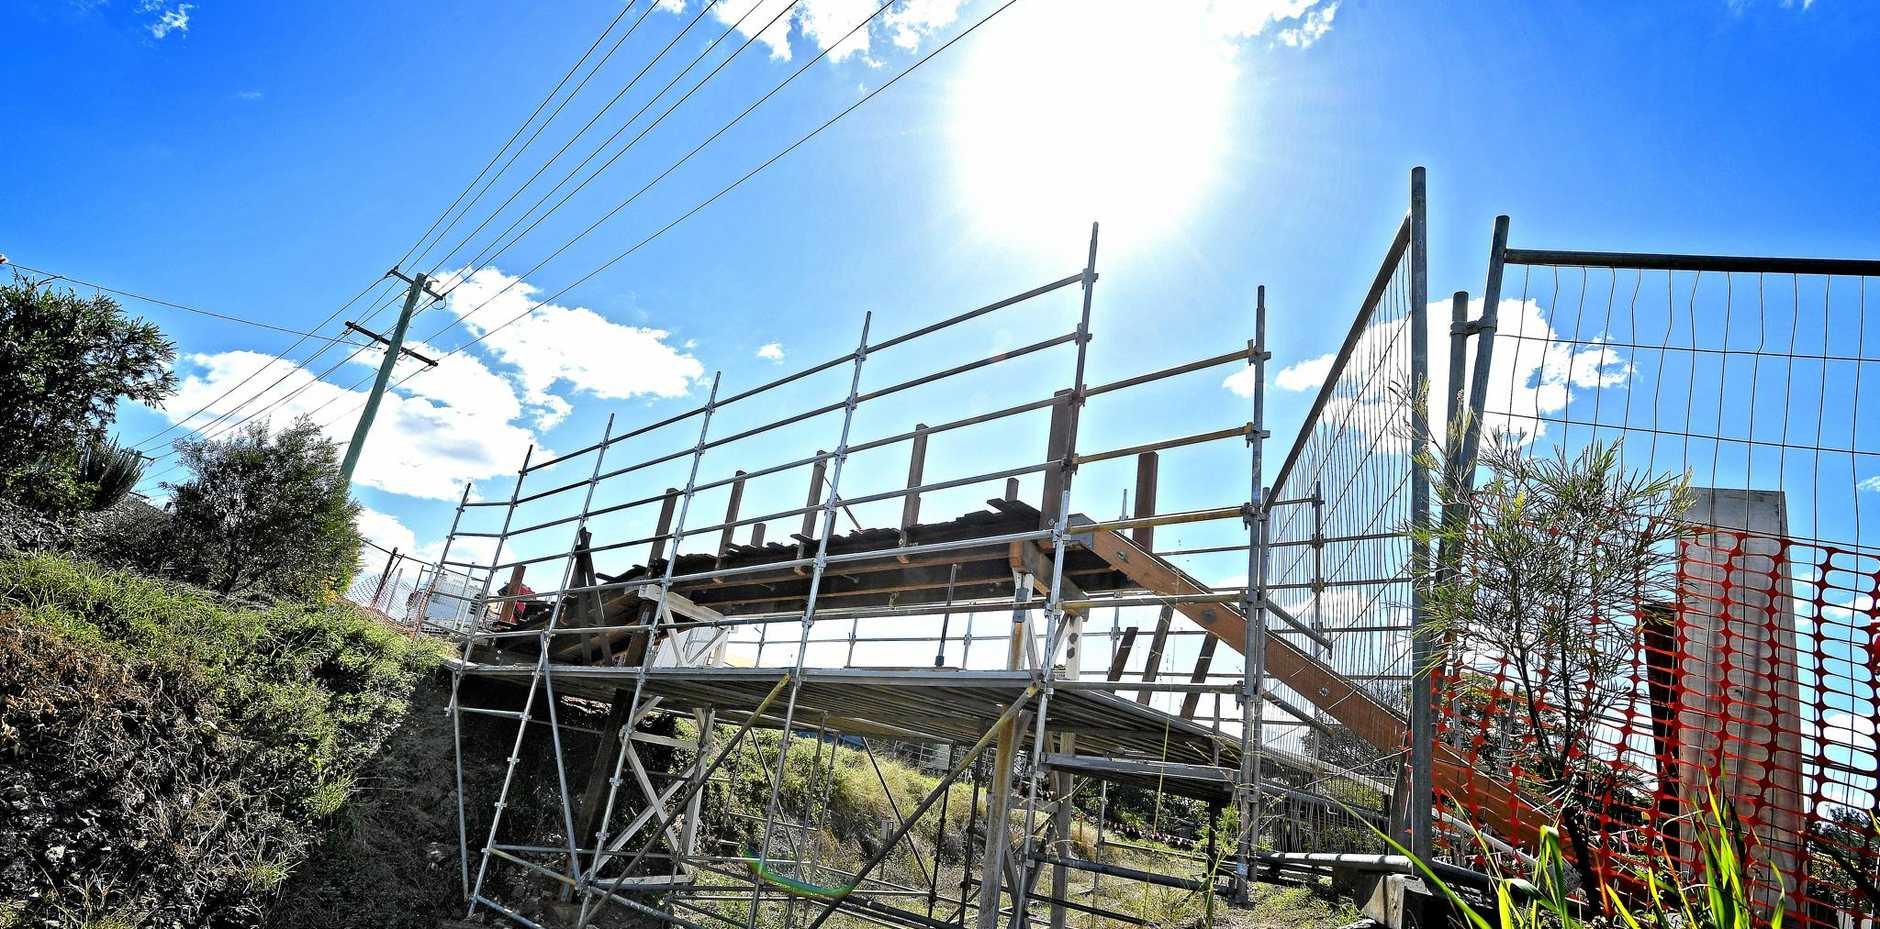 The Shanks St rail footbridge is getting an upgrade.